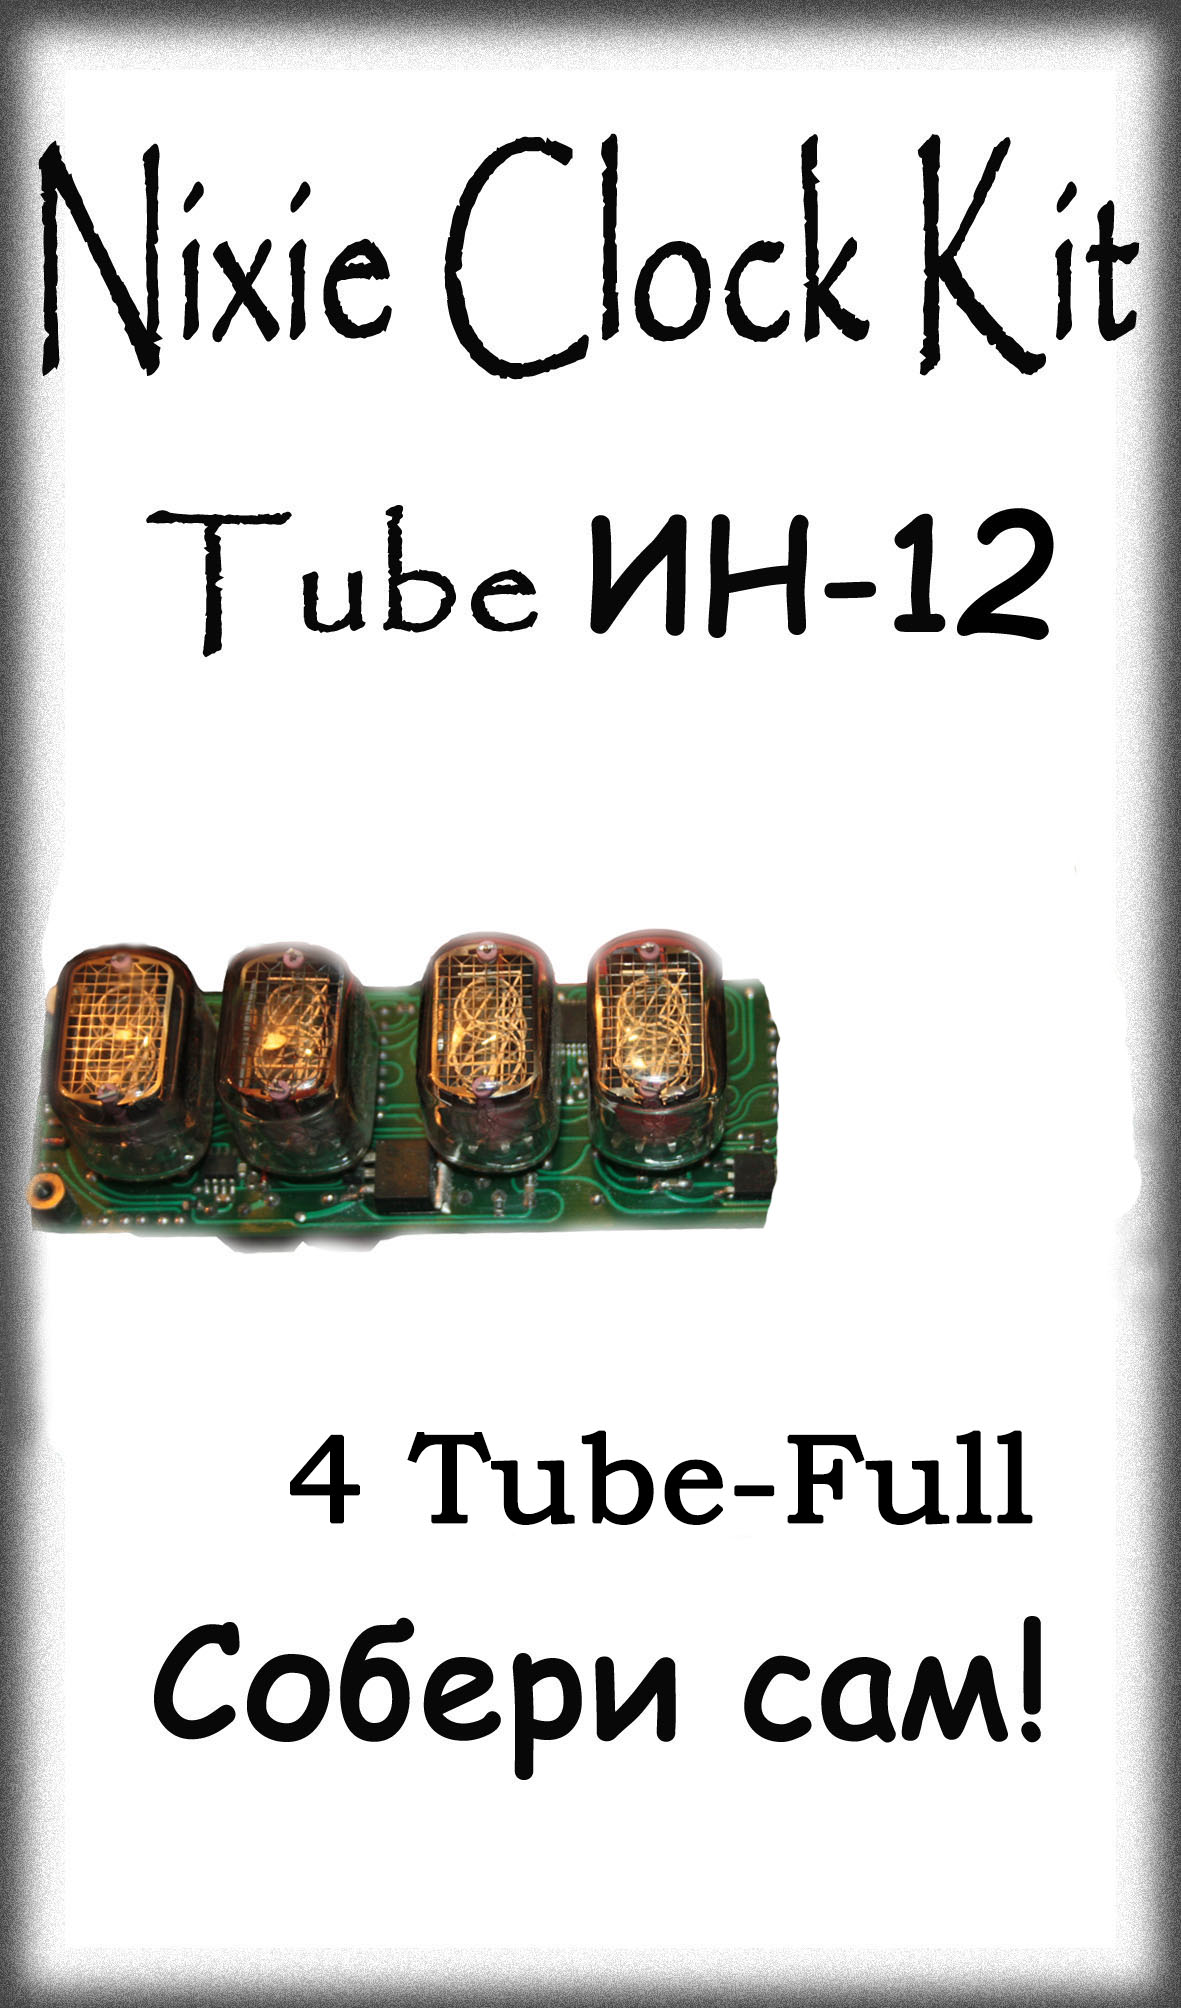 Nixie Clock Kit IN12 4-Tube Full